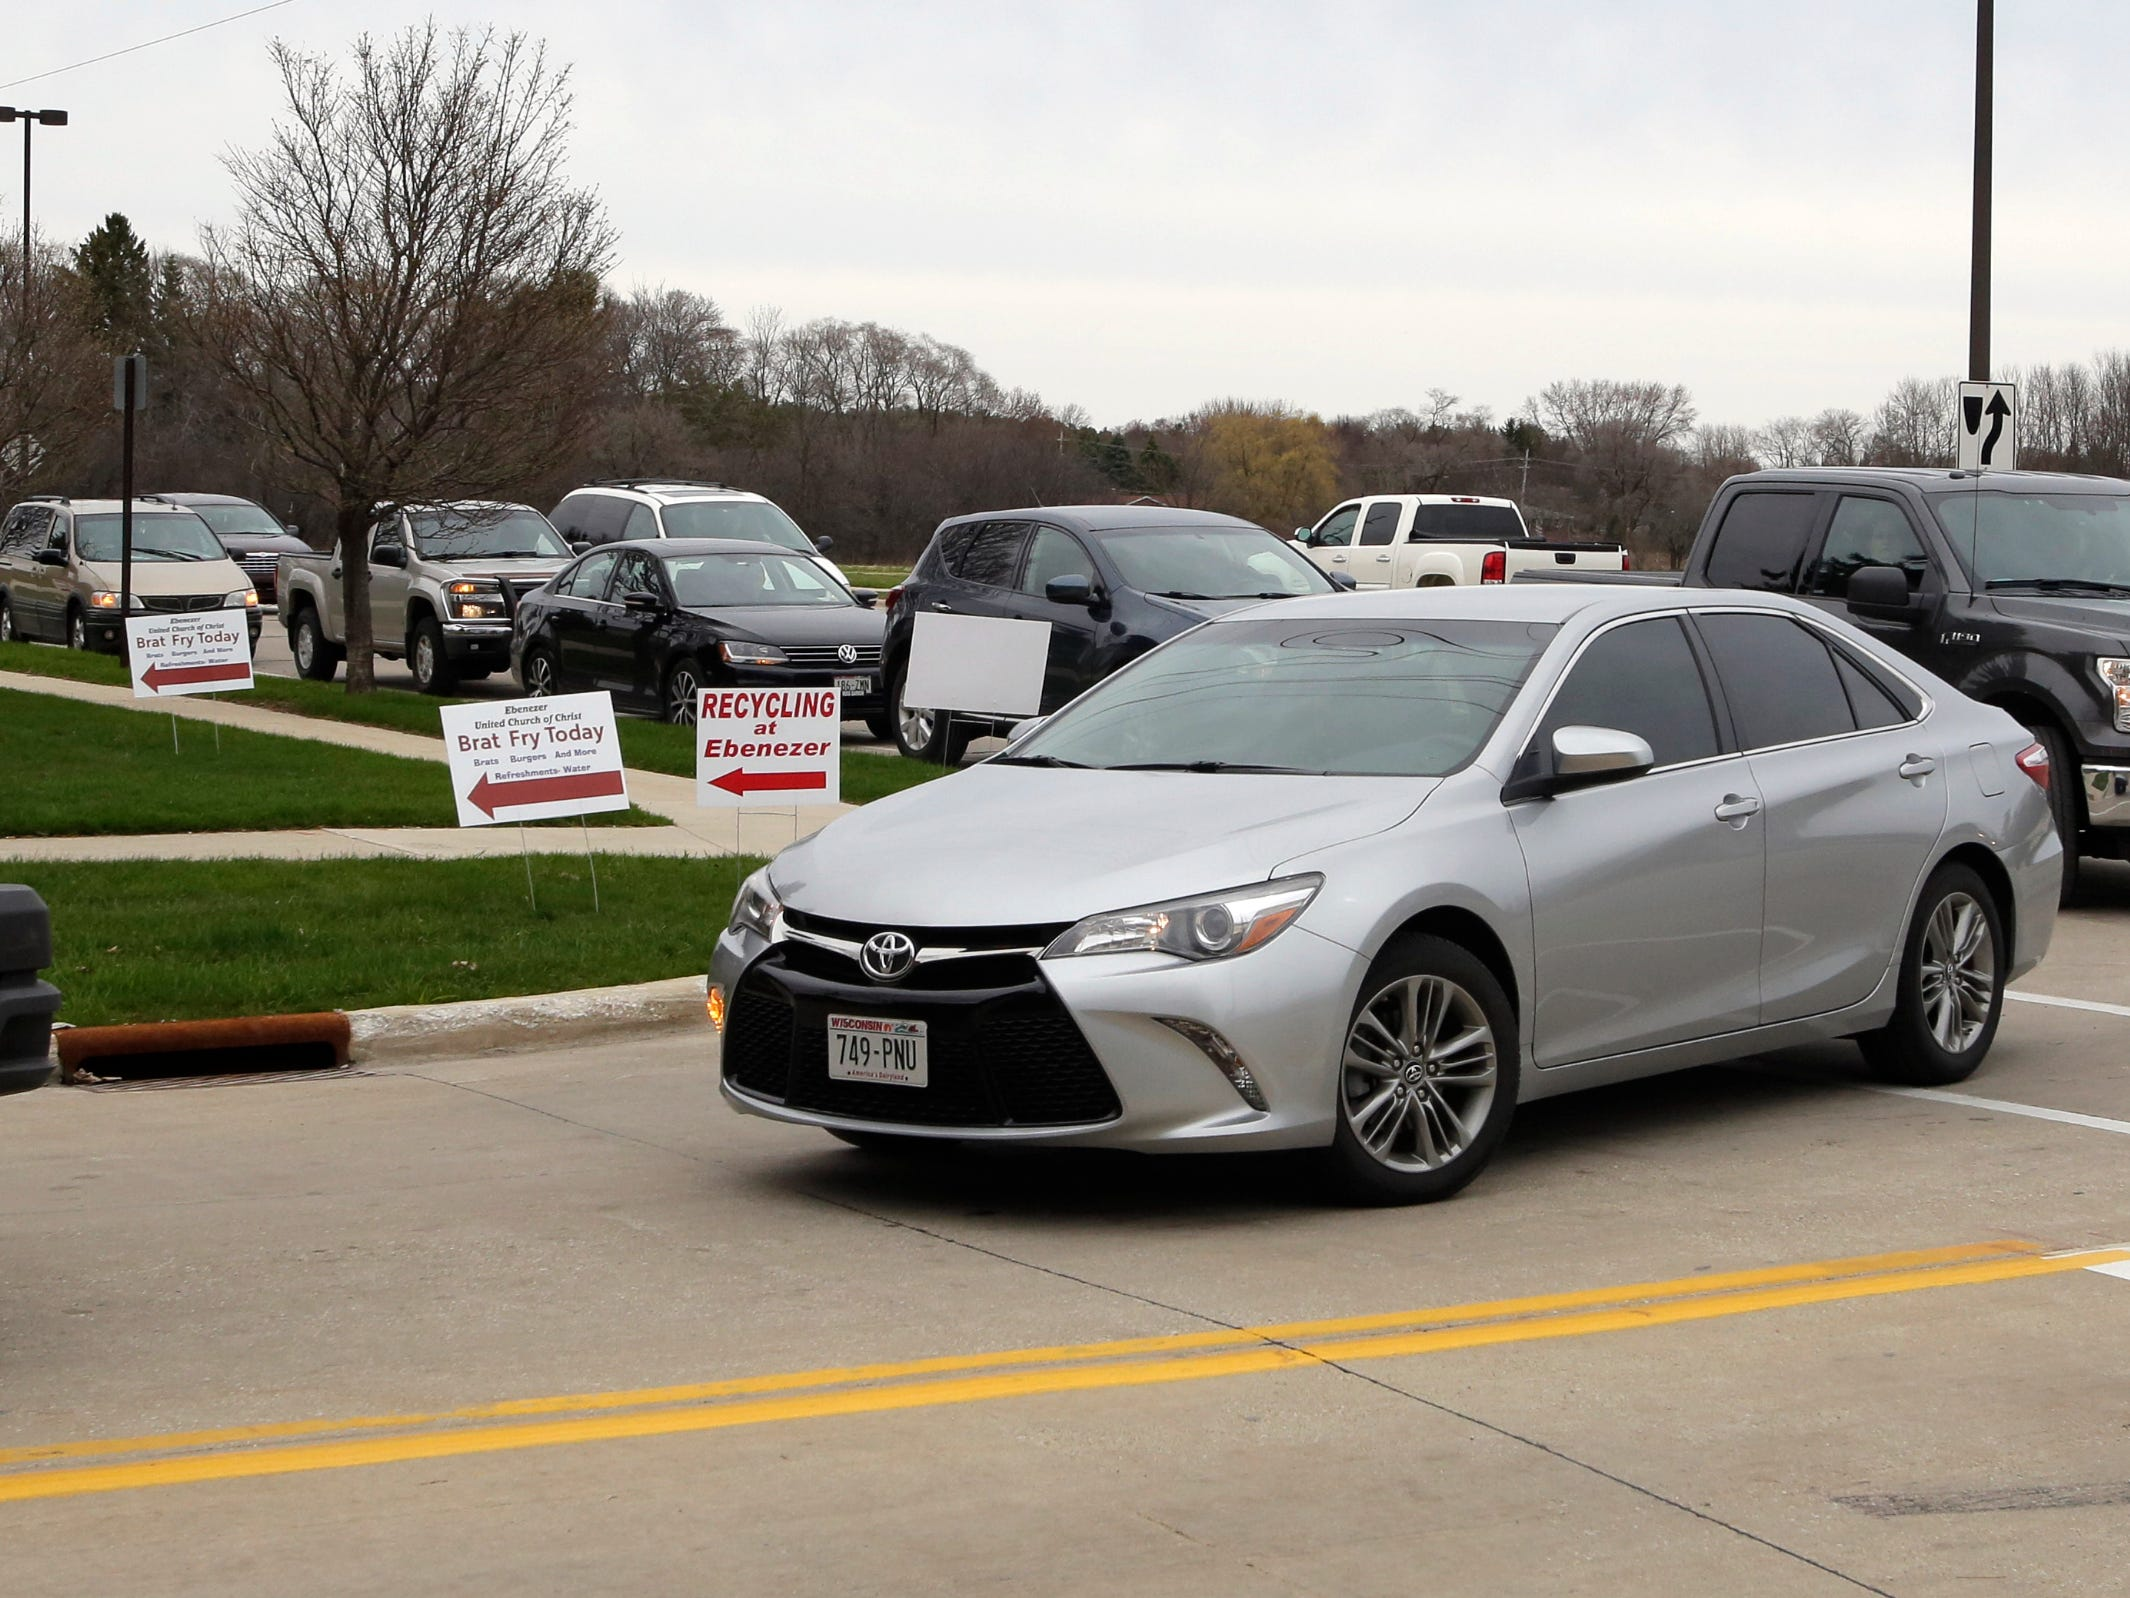 Motorists turn onto Seaman Avenue and line up on Taylor Drive during the recycling event at Ebenezer United Church of Christ, Saturday, April 27, 2019, in Sheboygan, Wis.